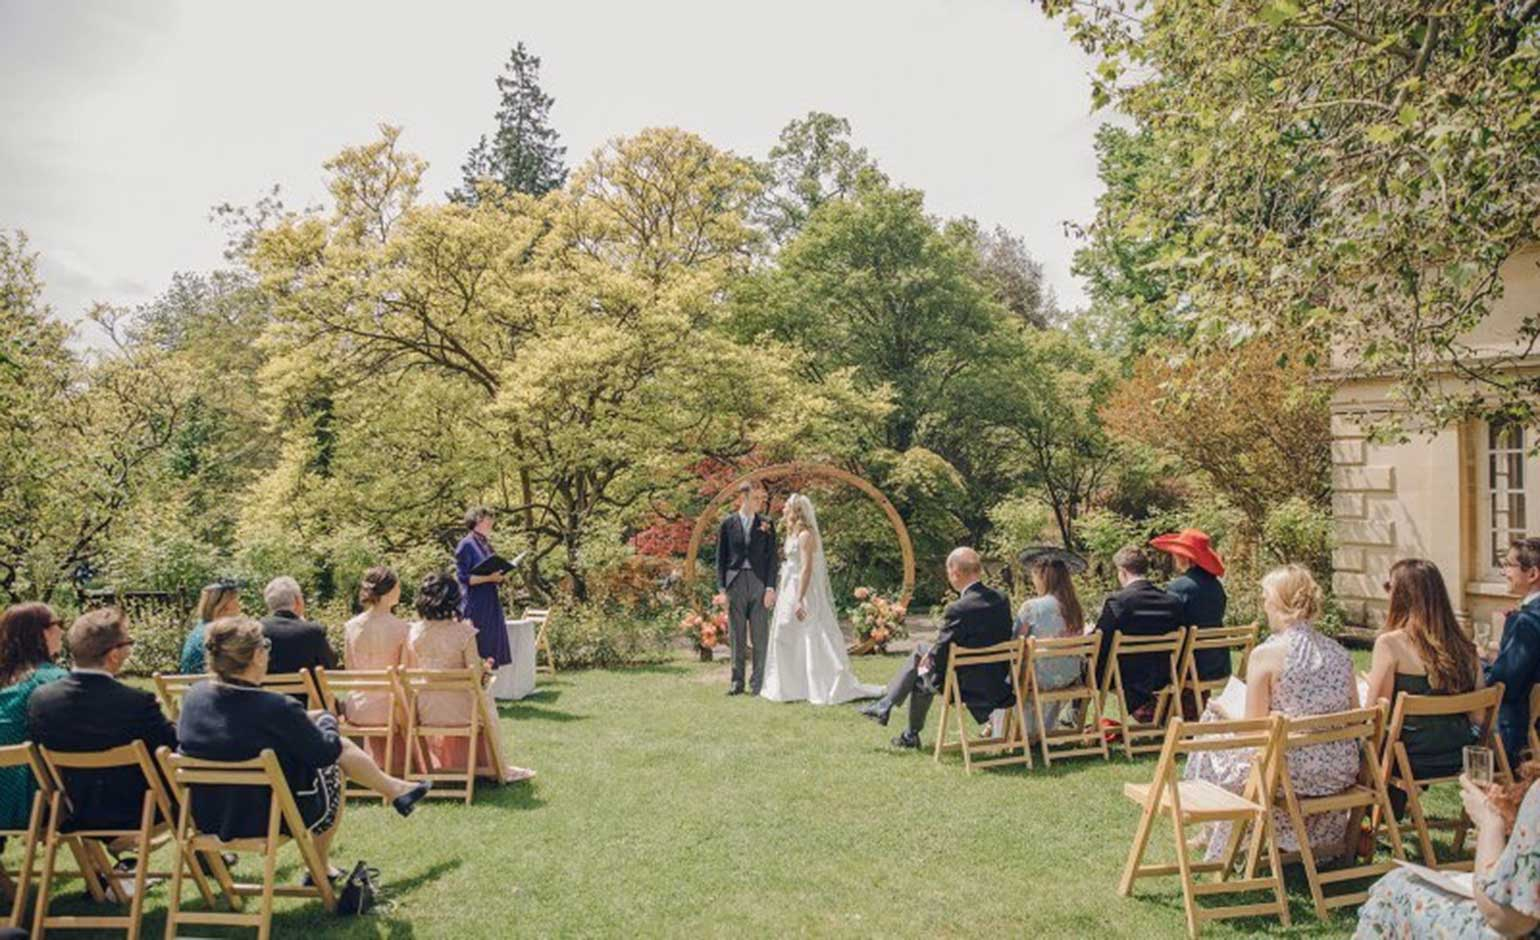 Hundreds of couples enjoy dream weddings thanks to city's popular venues